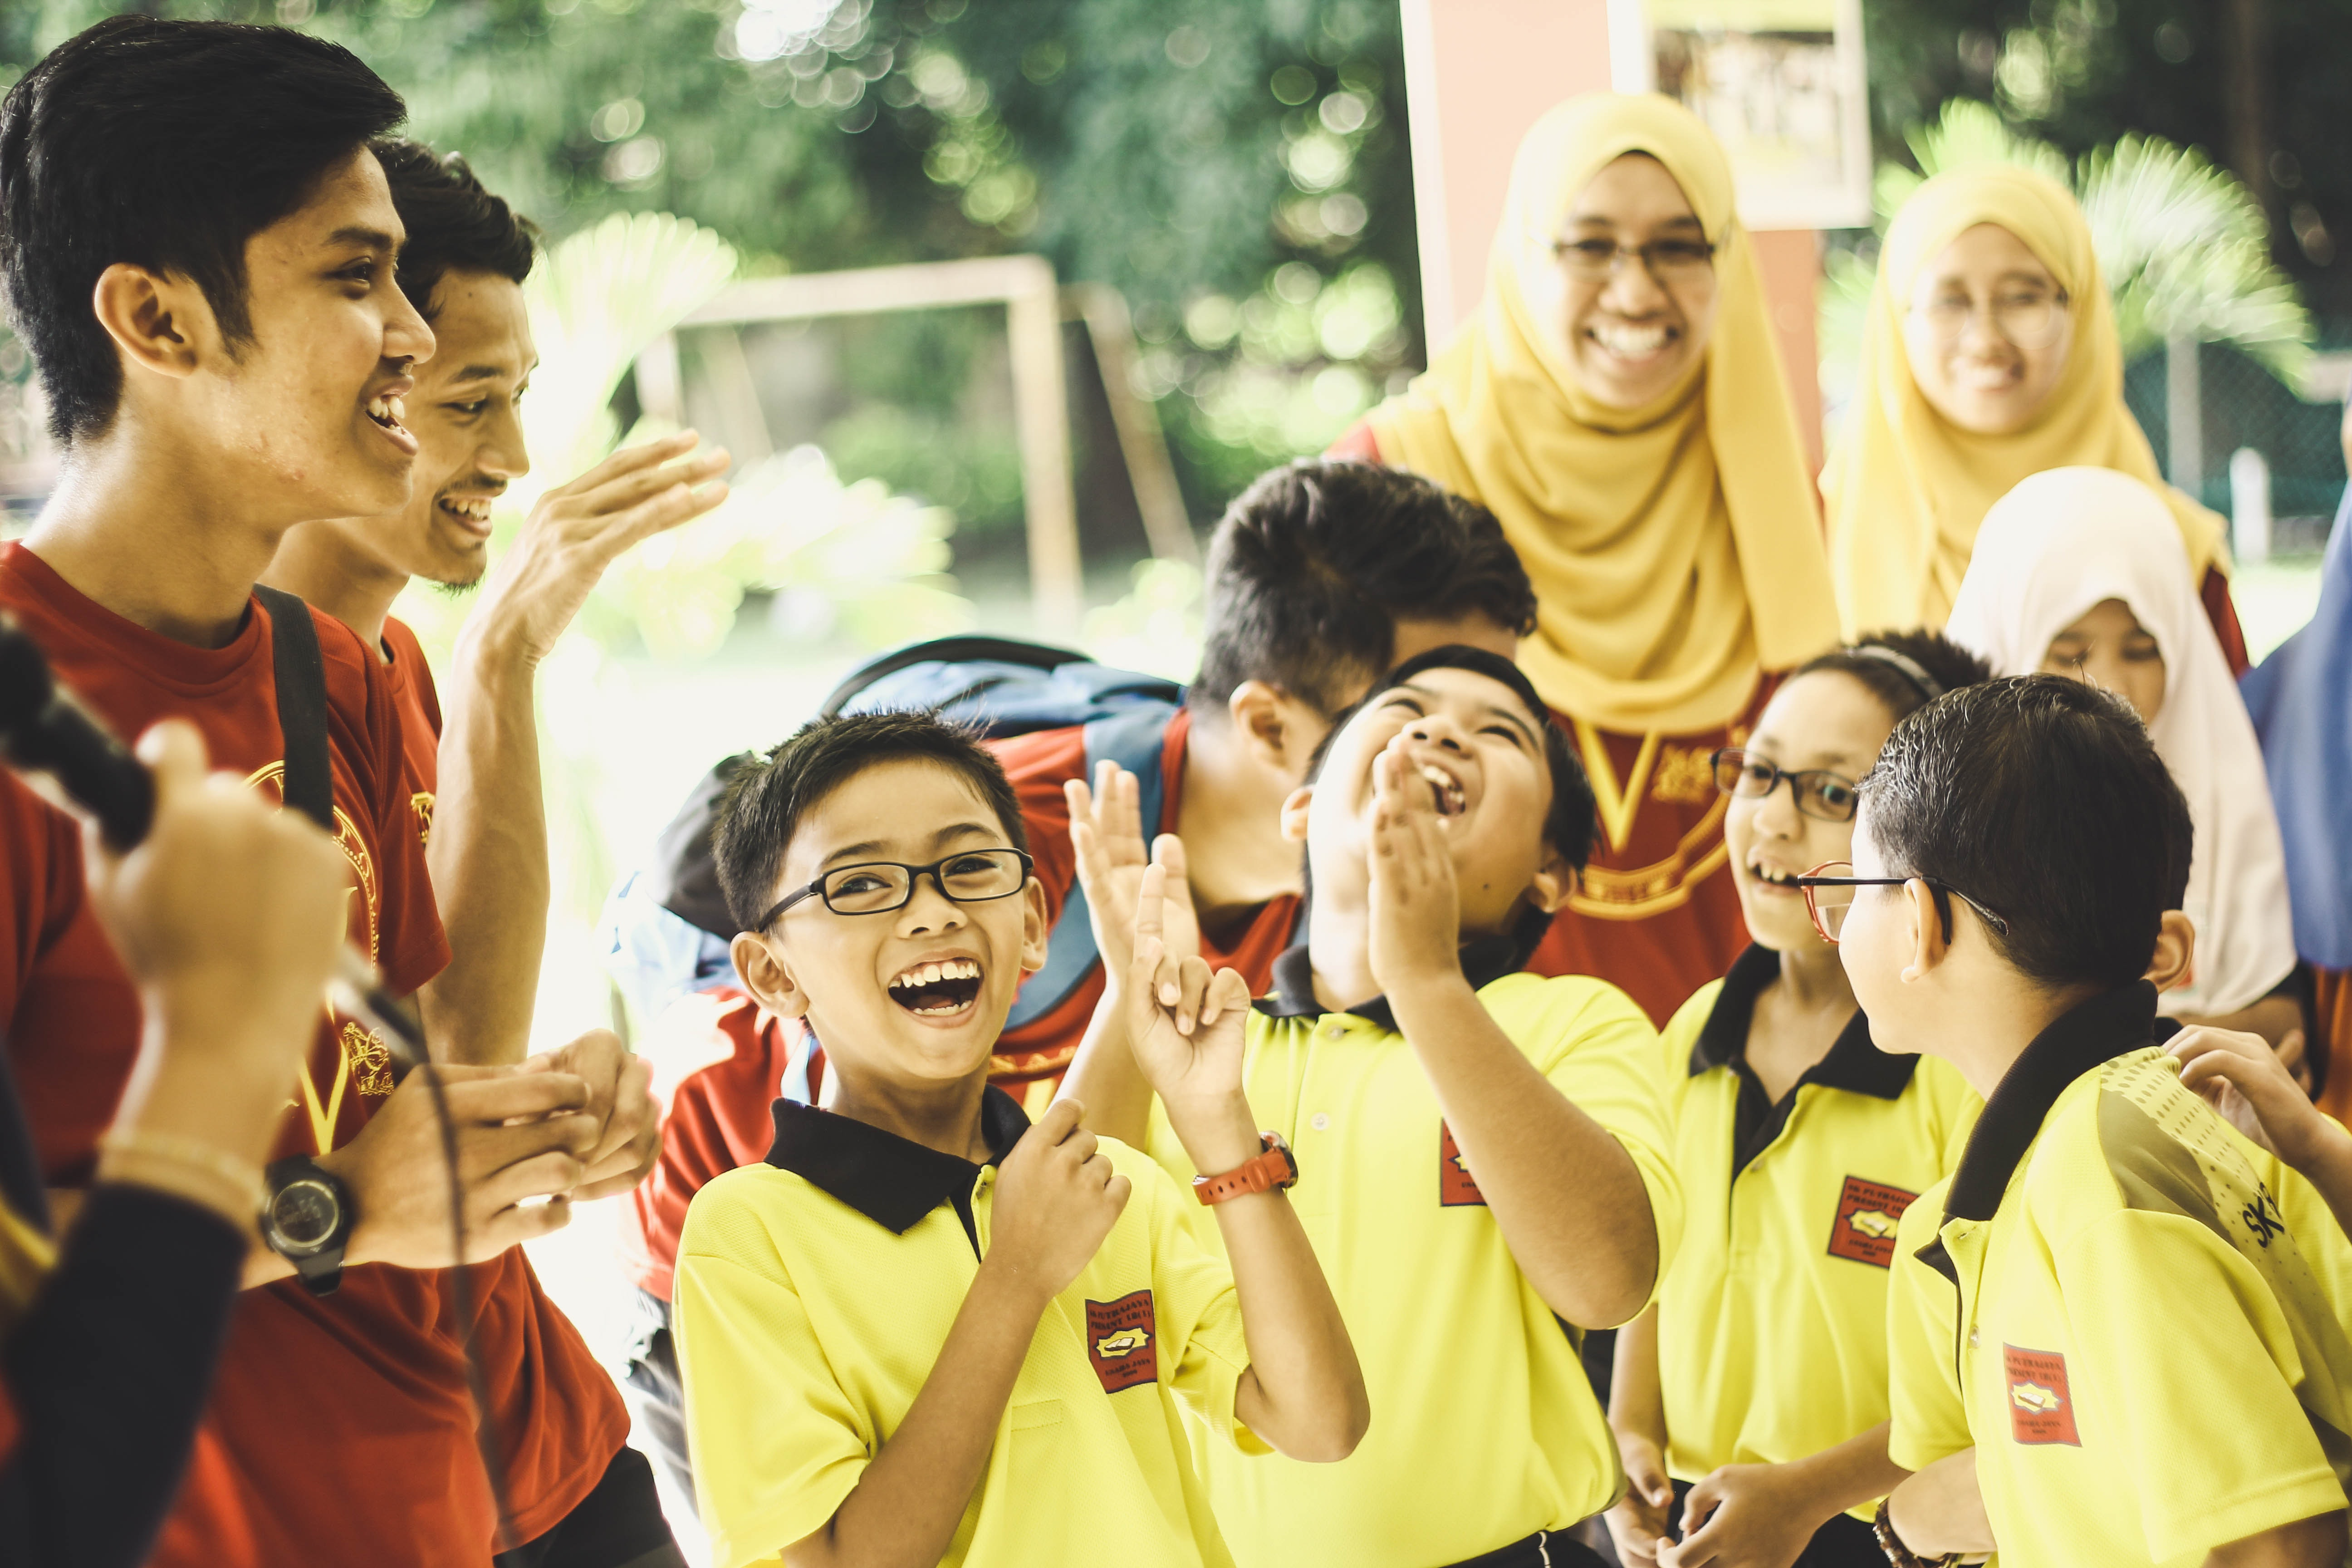 Kids in yellow uniform having a happy moment